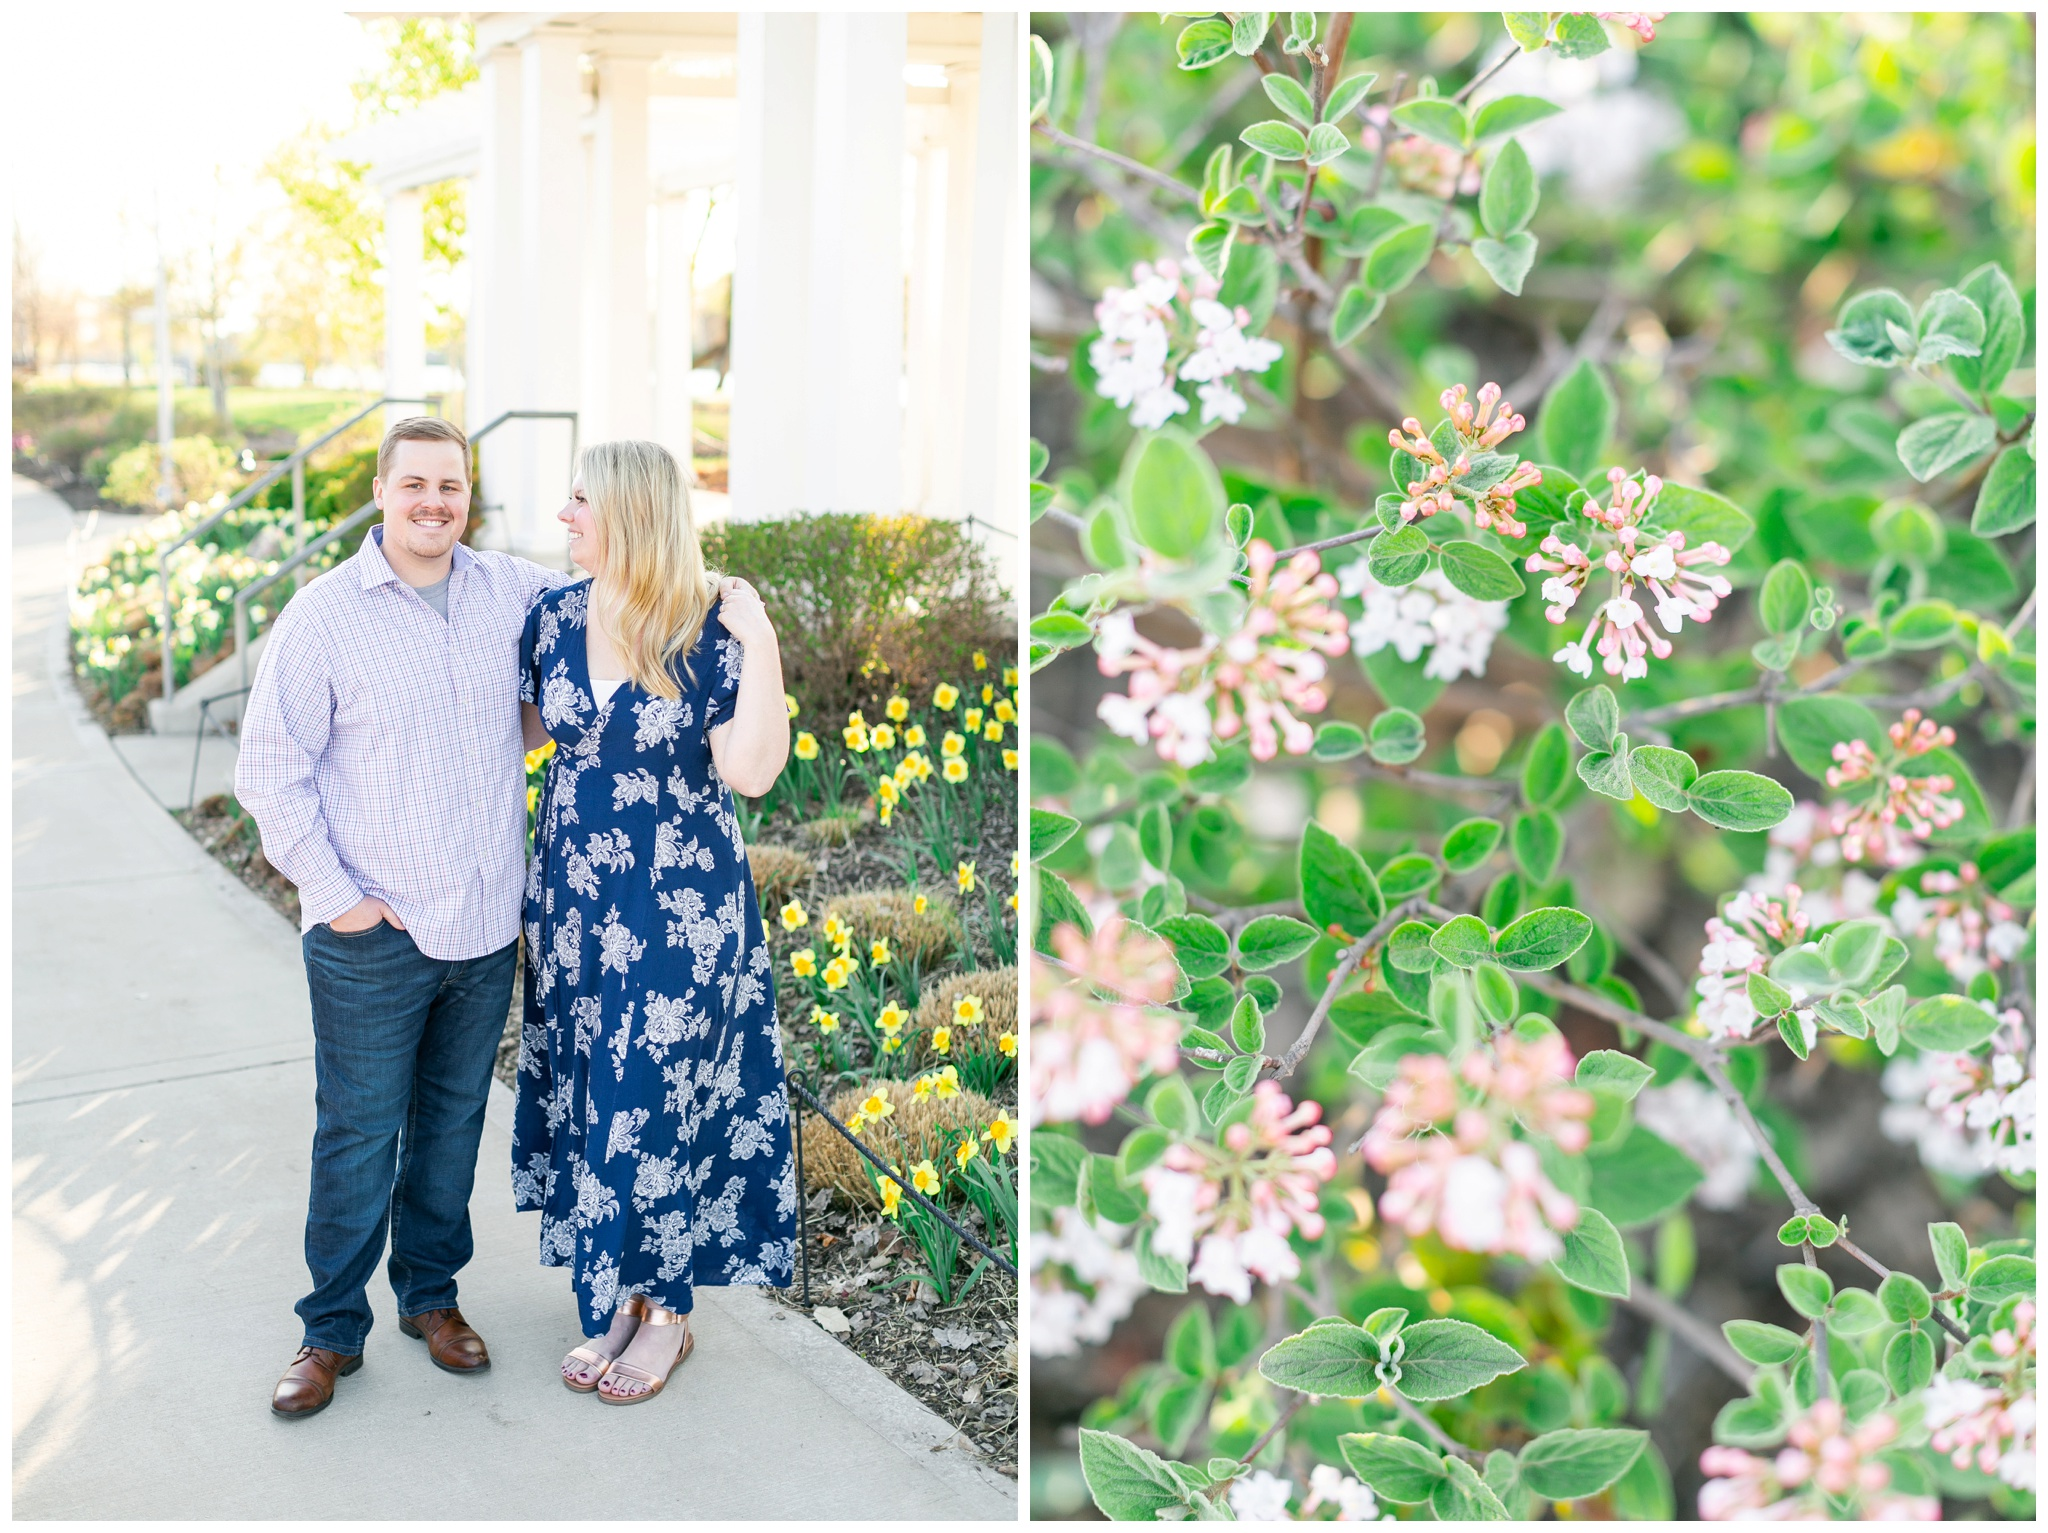 nicholas_conservatory_engagement_session_rockford_illinois_caynay_photo_2980.jpg